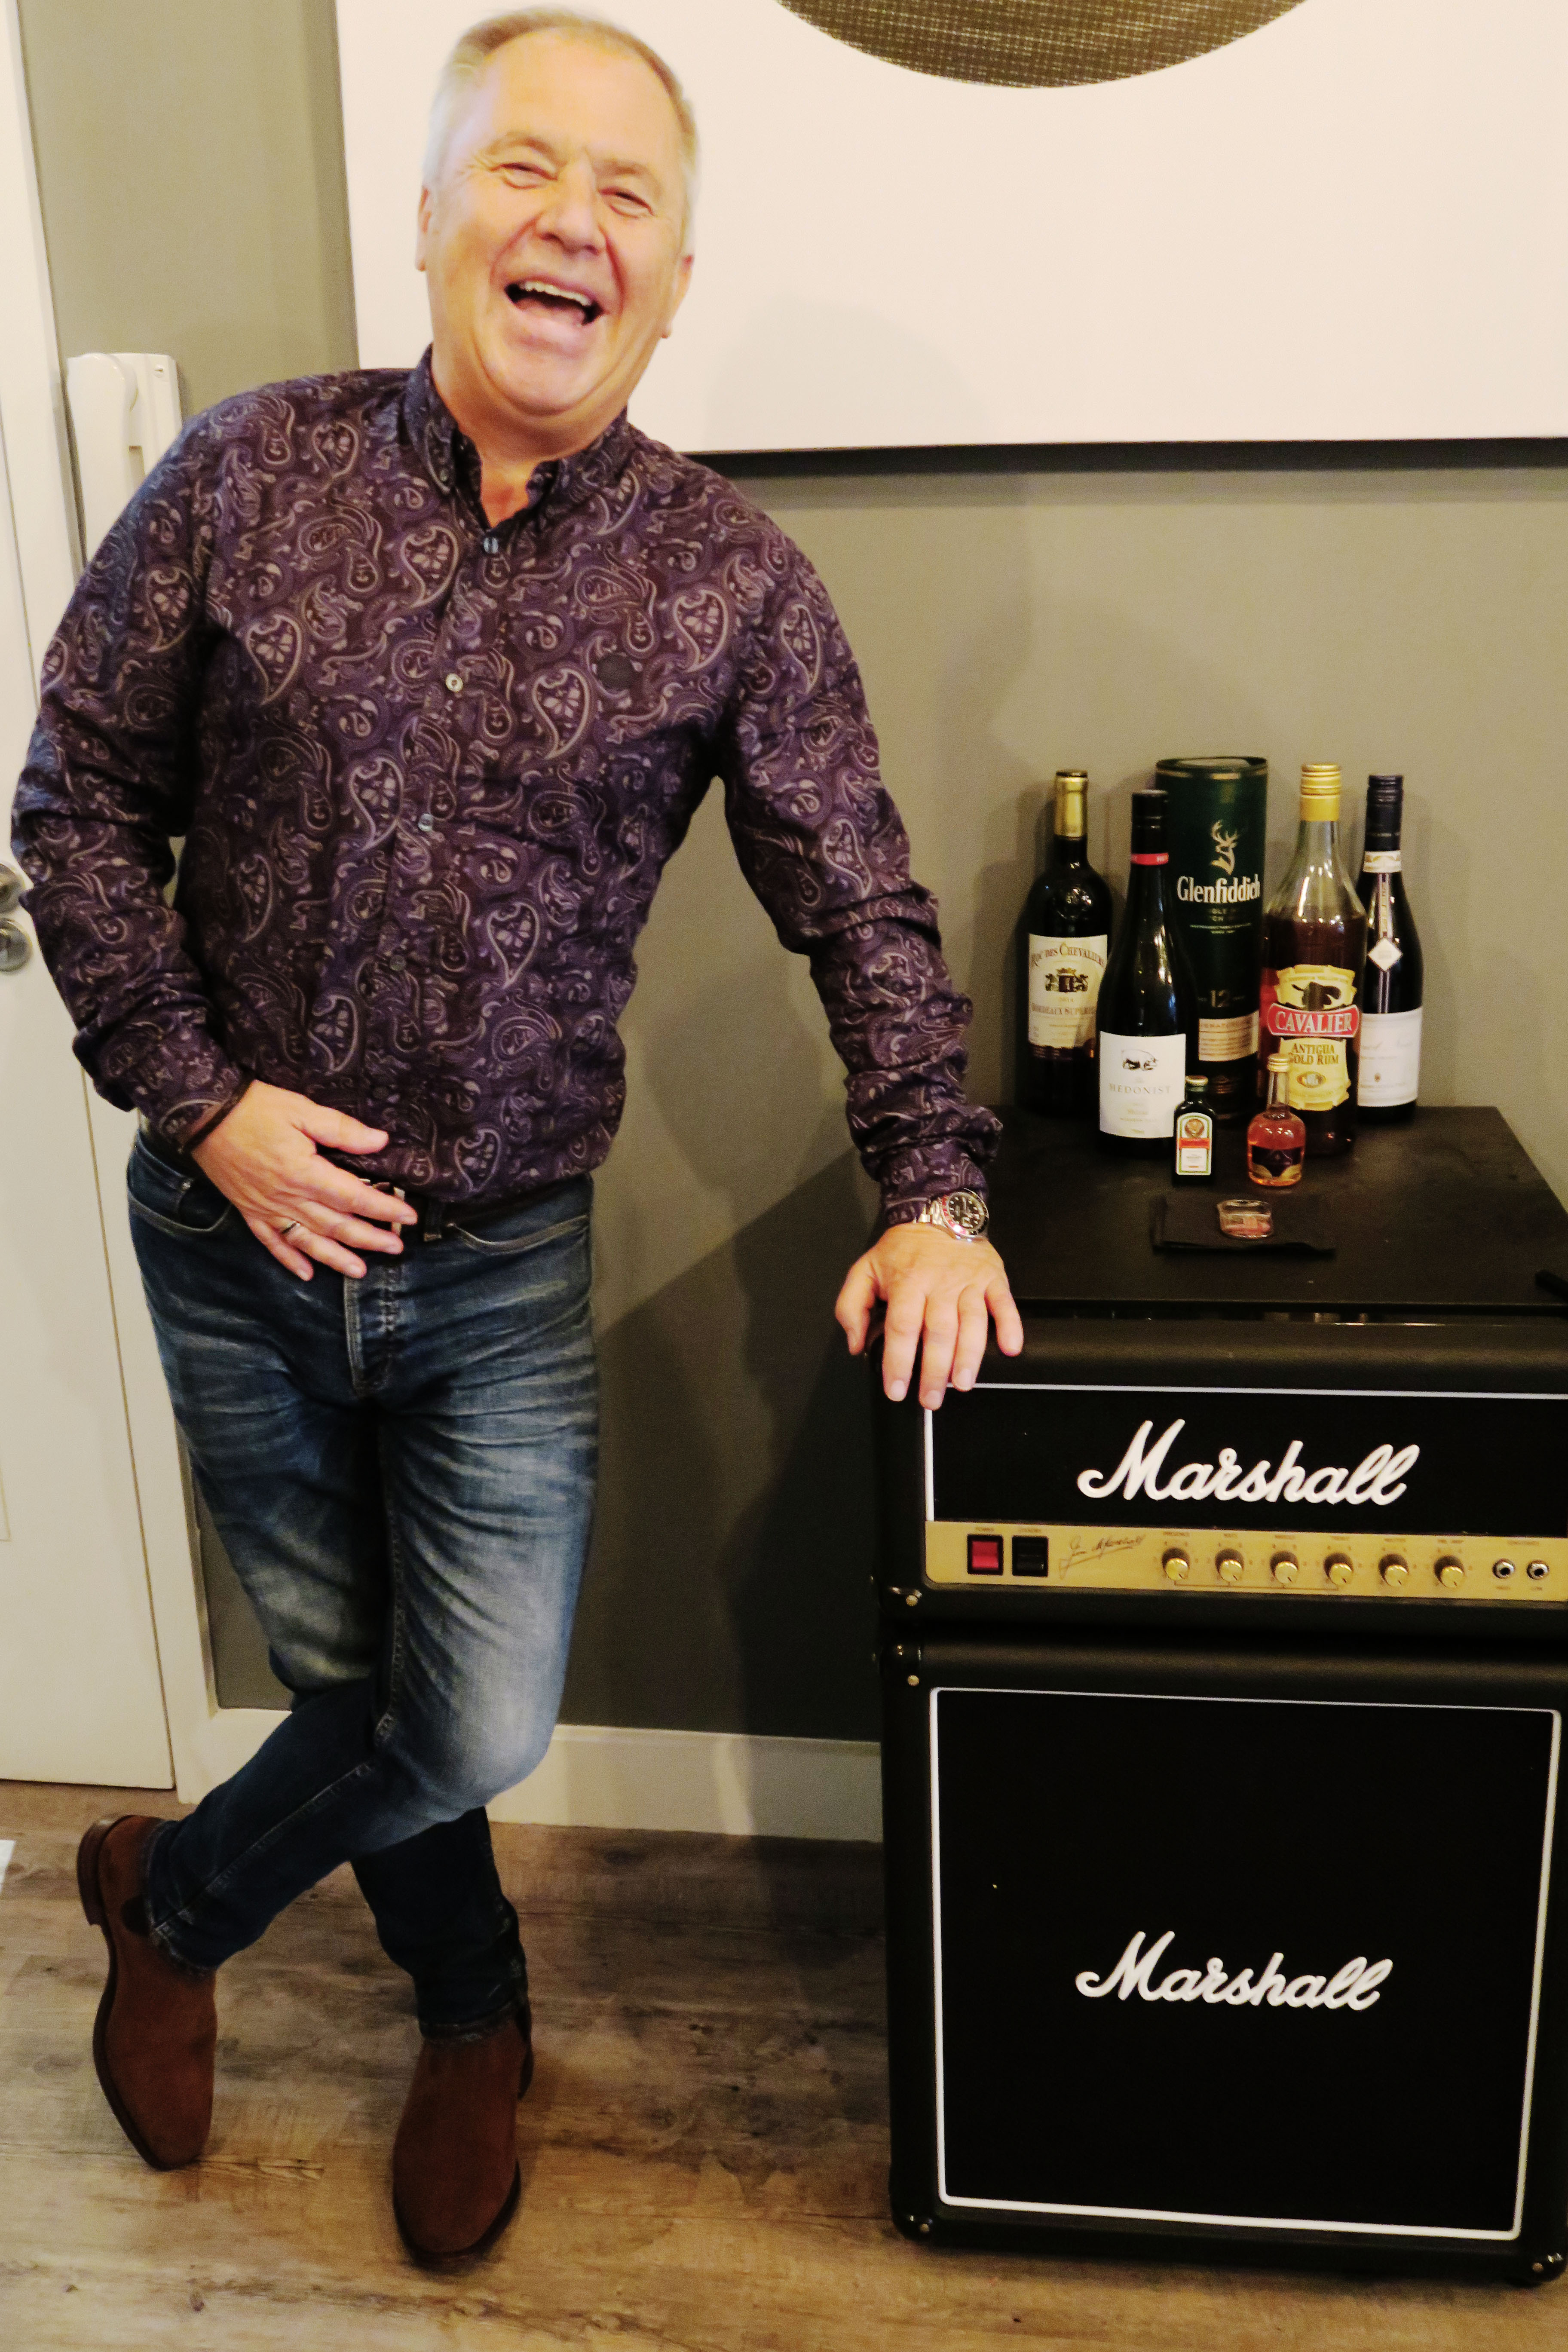 Steve Tannett with Marshall fridge